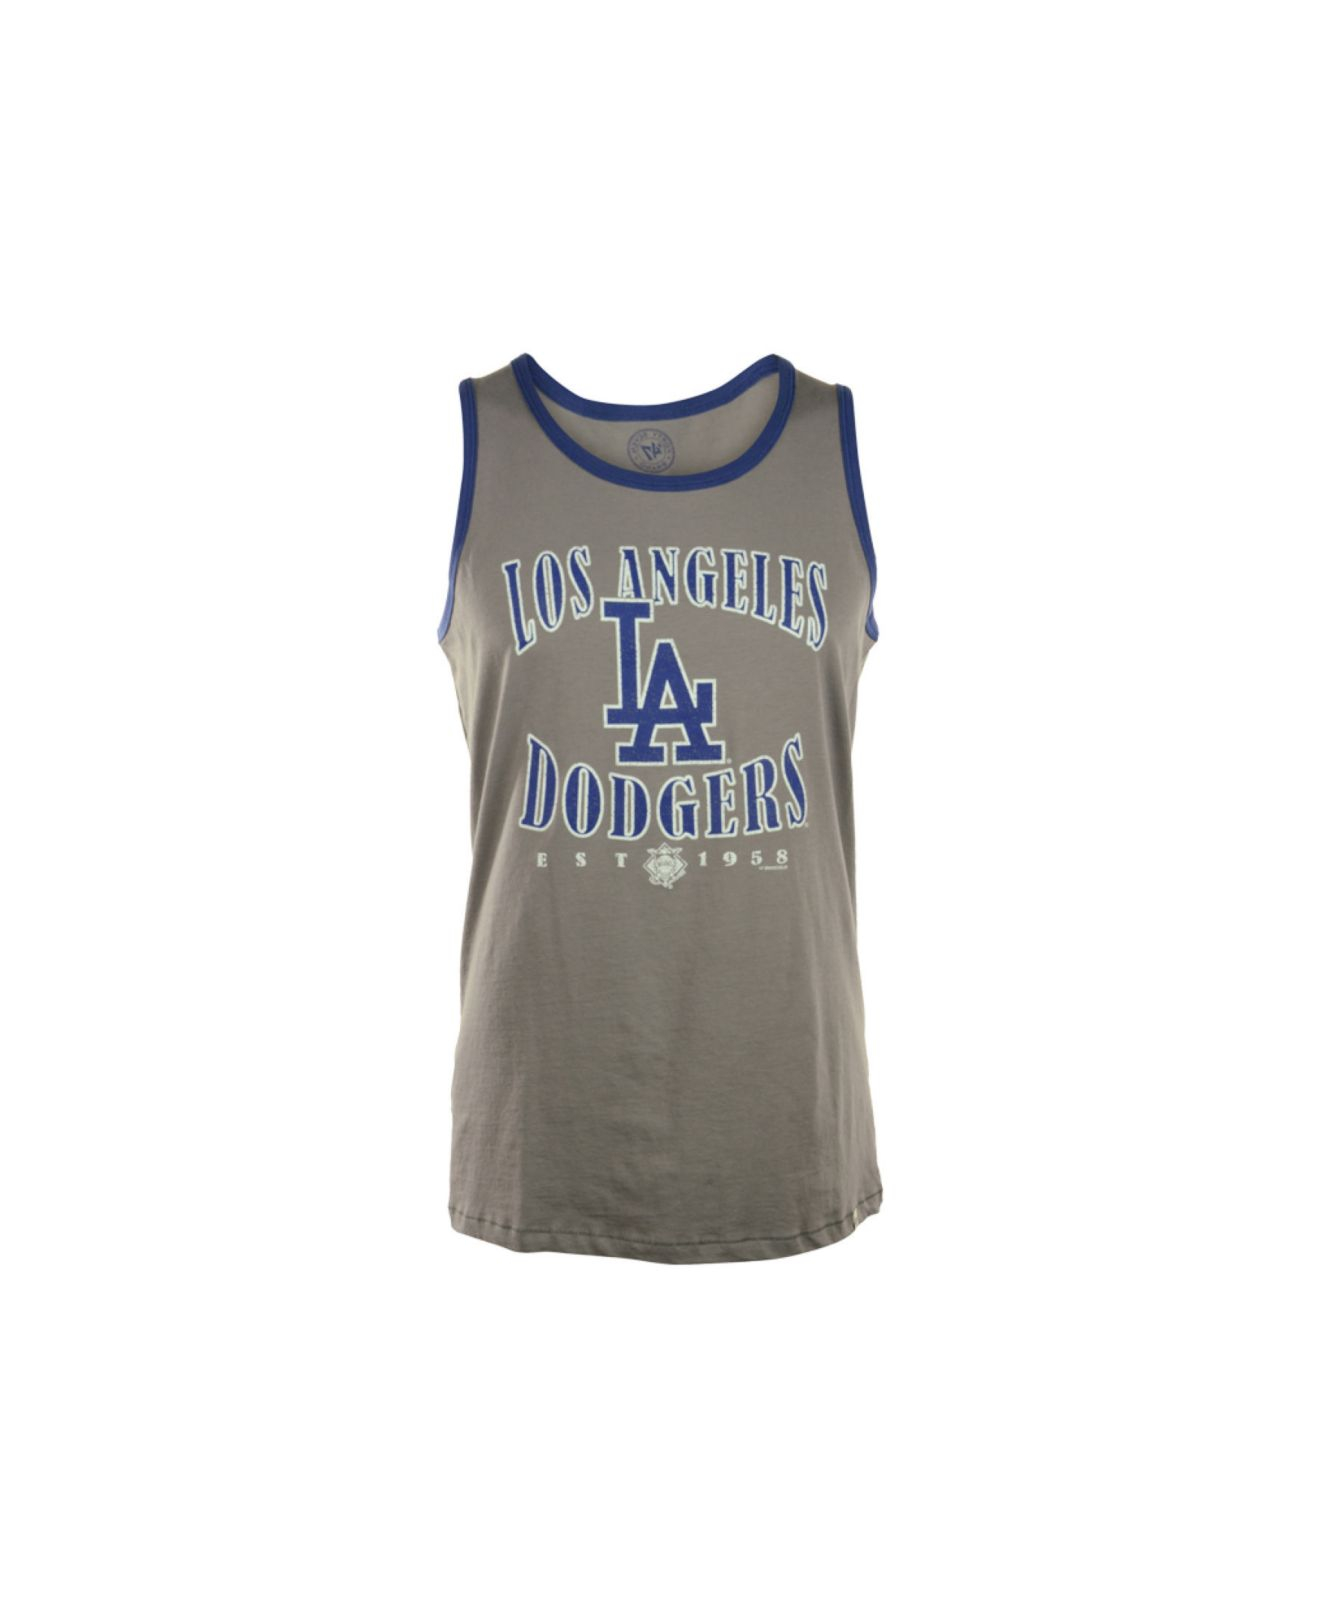 detailed look b4fb4 228e7 Lyst - 47 Brand Men S Sleeveless Los Angeles Dodgers Tank Top in ...